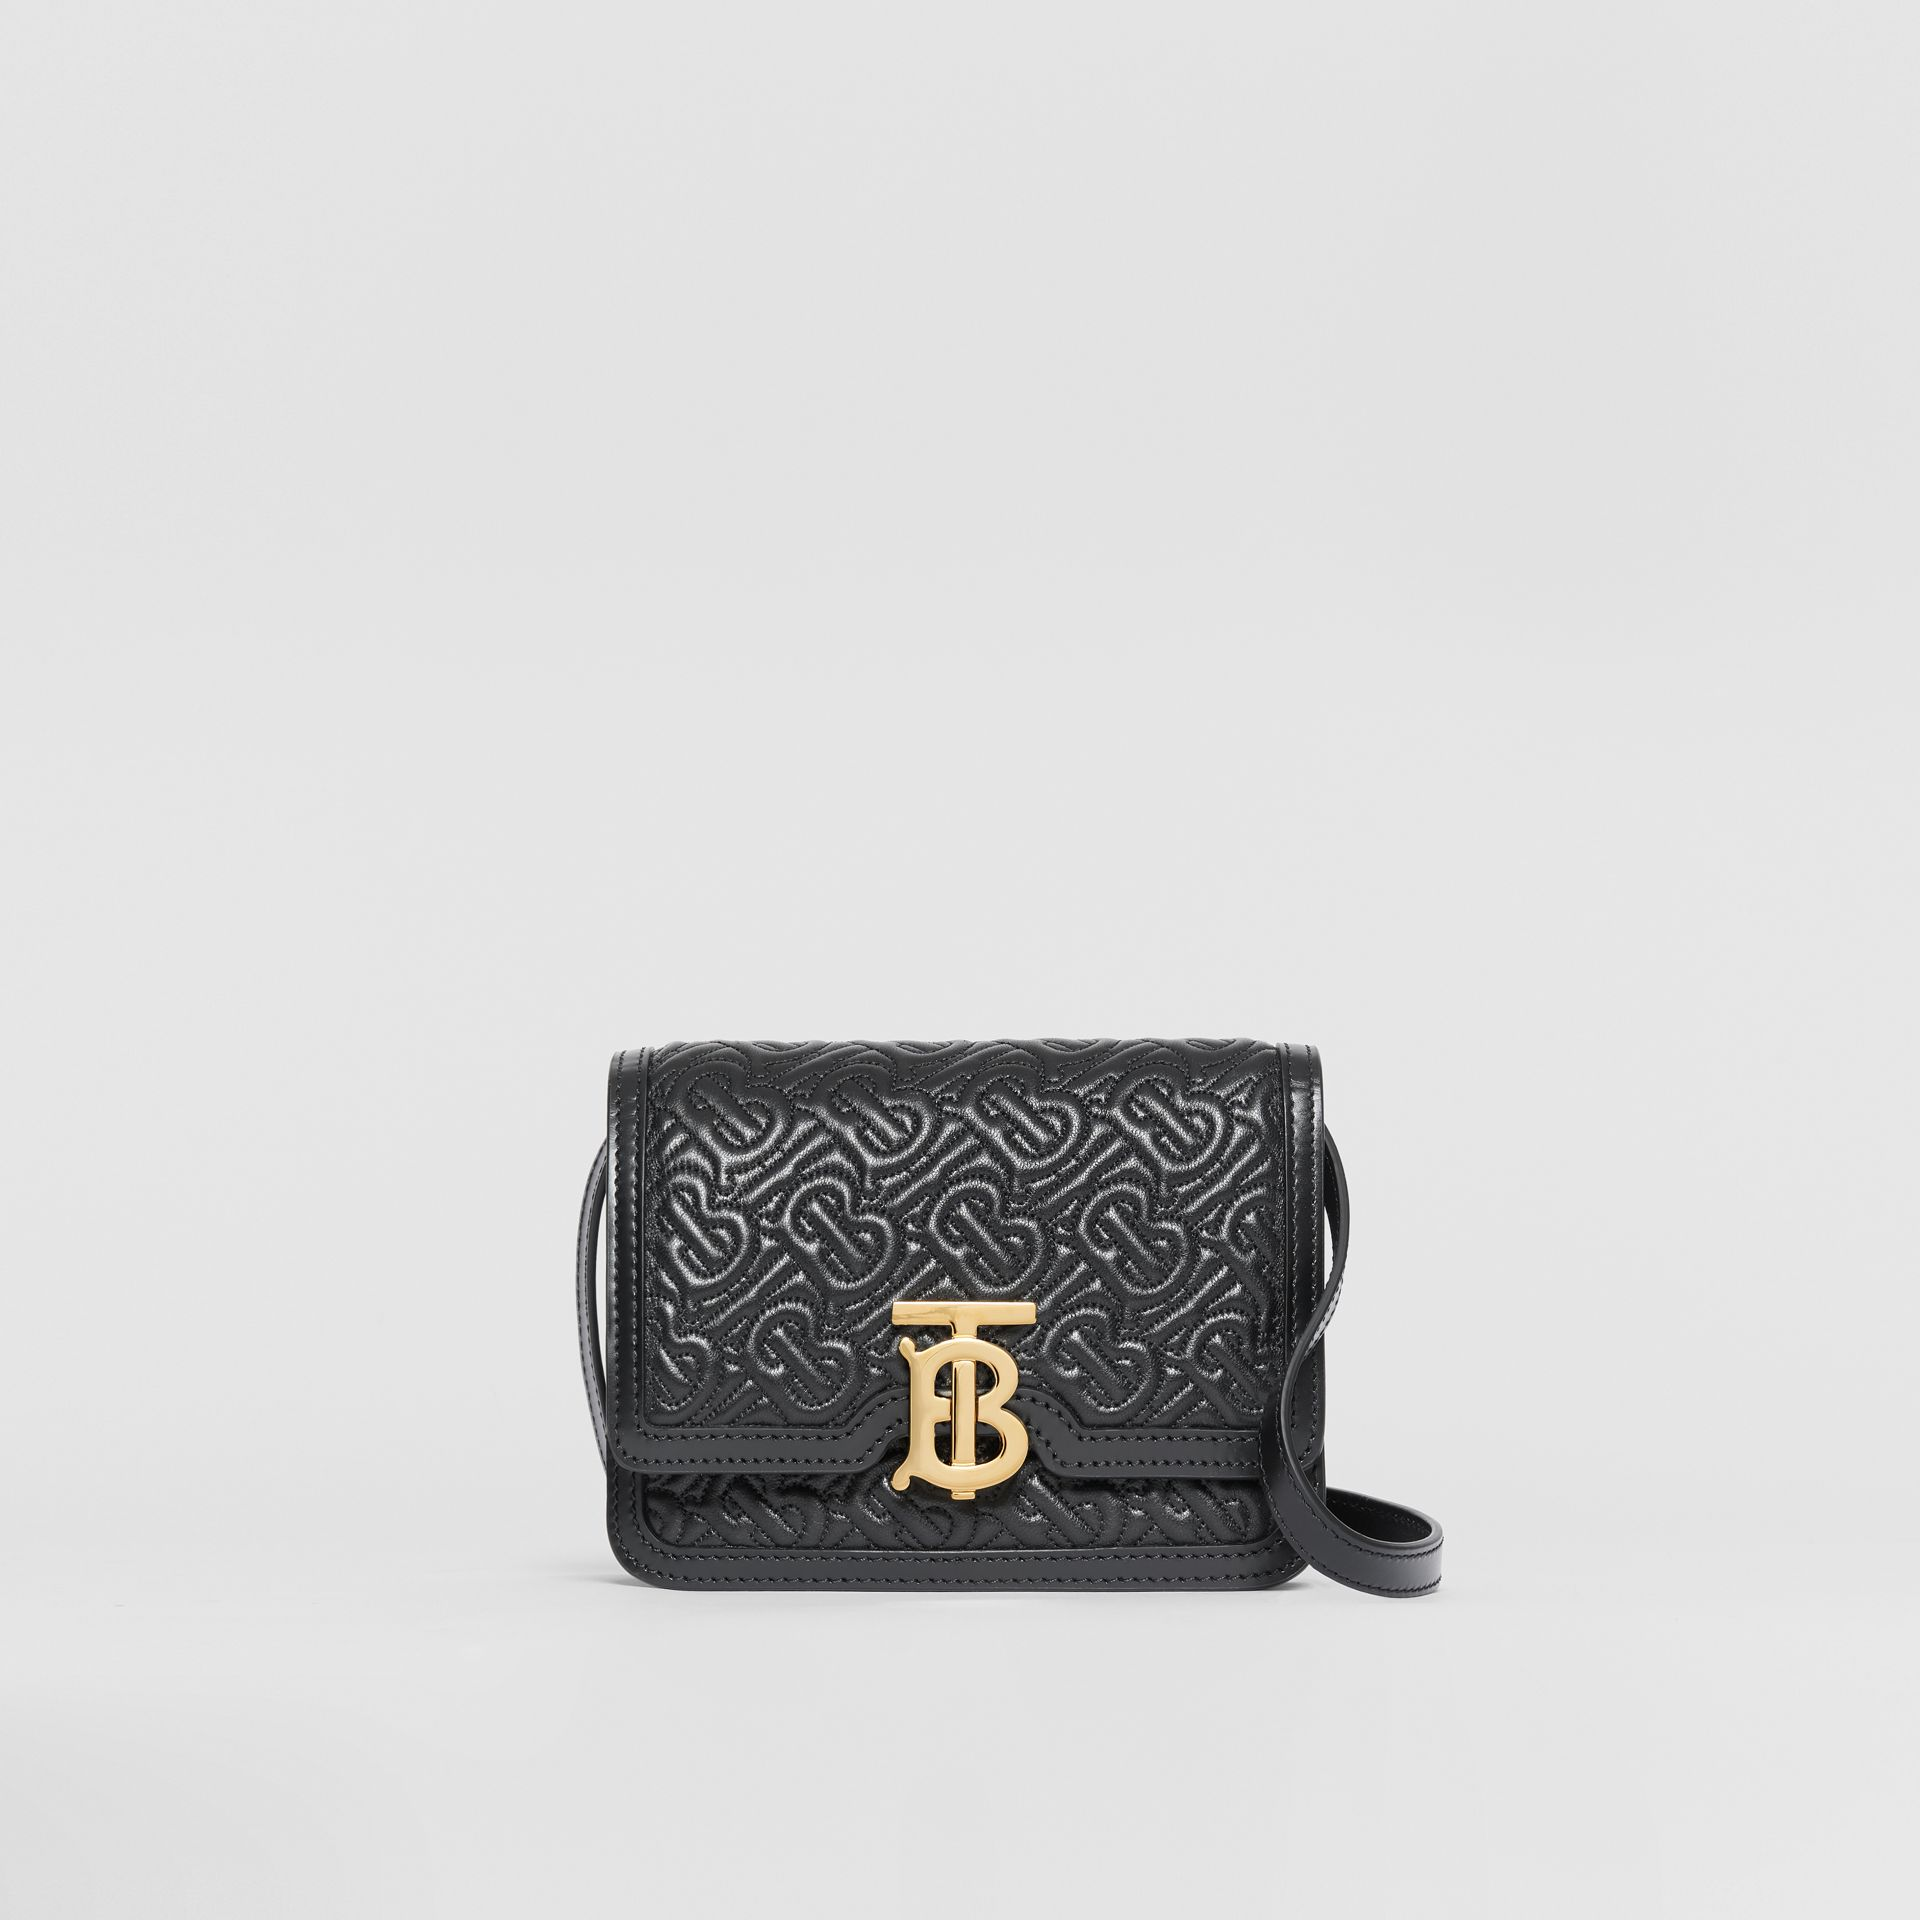 Mini Quilted Monogram Lambskin TB Bag in Black - Women | Burberry United Kingdom - gallery image 0